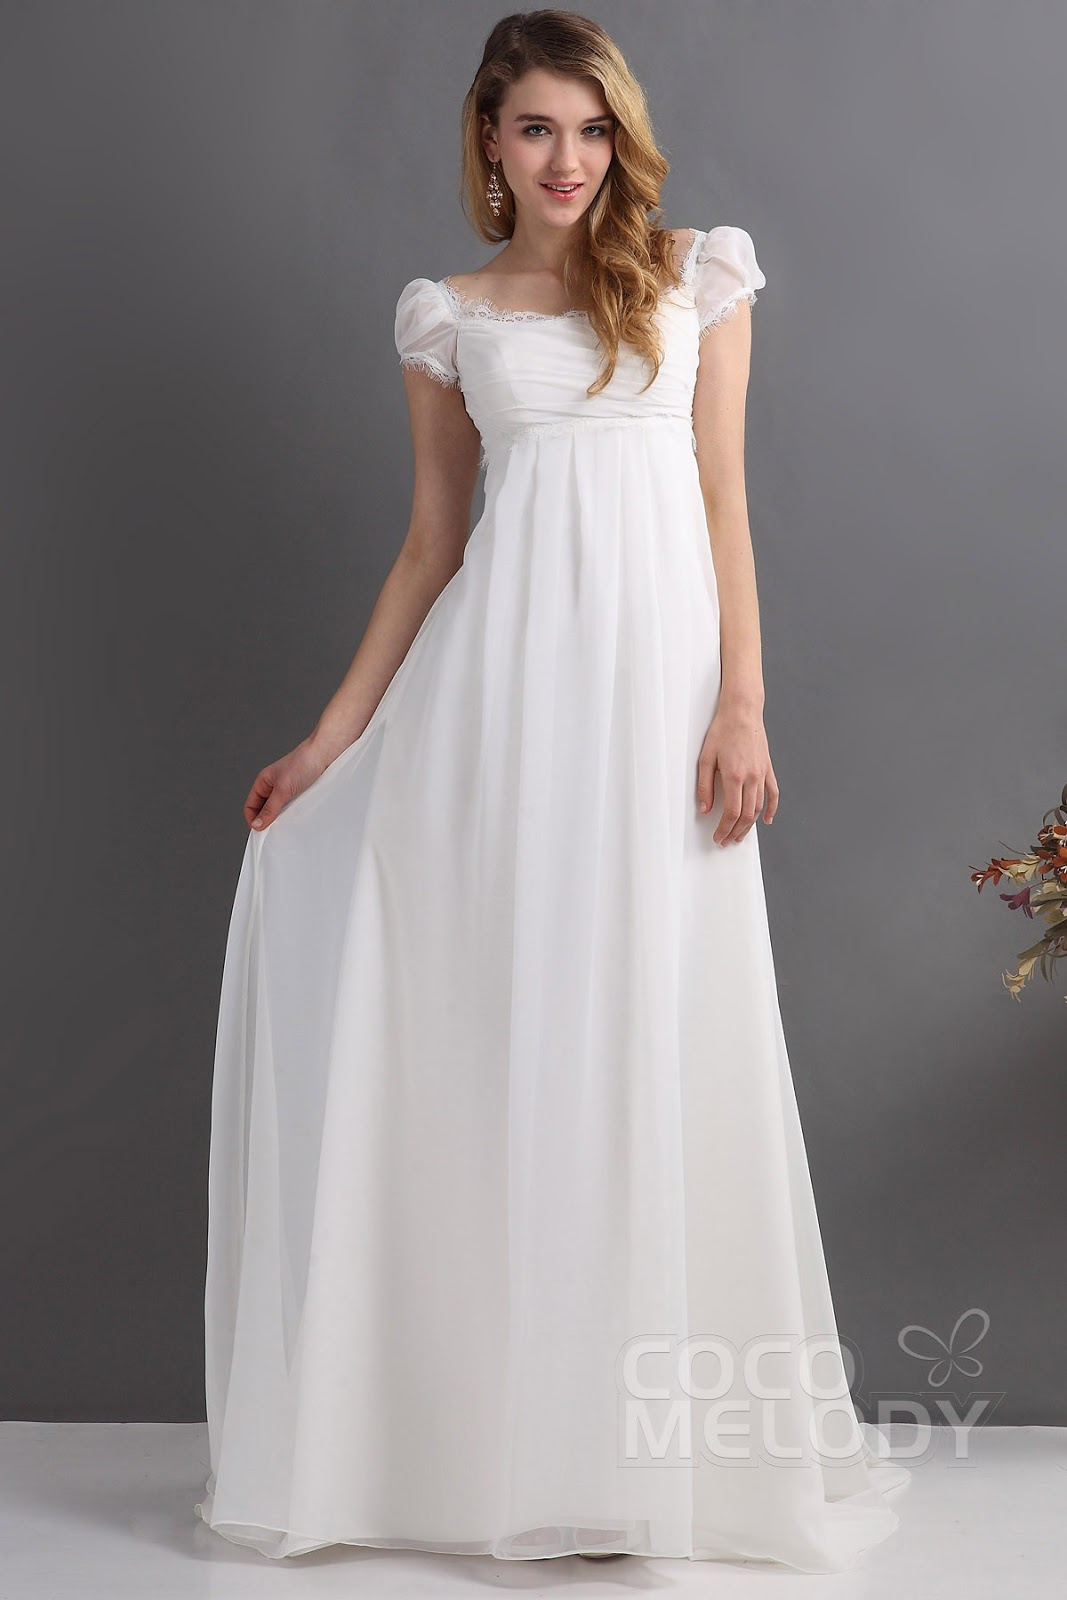 2013 the most beautiful wedding dress: Easy wedding dress can build ...